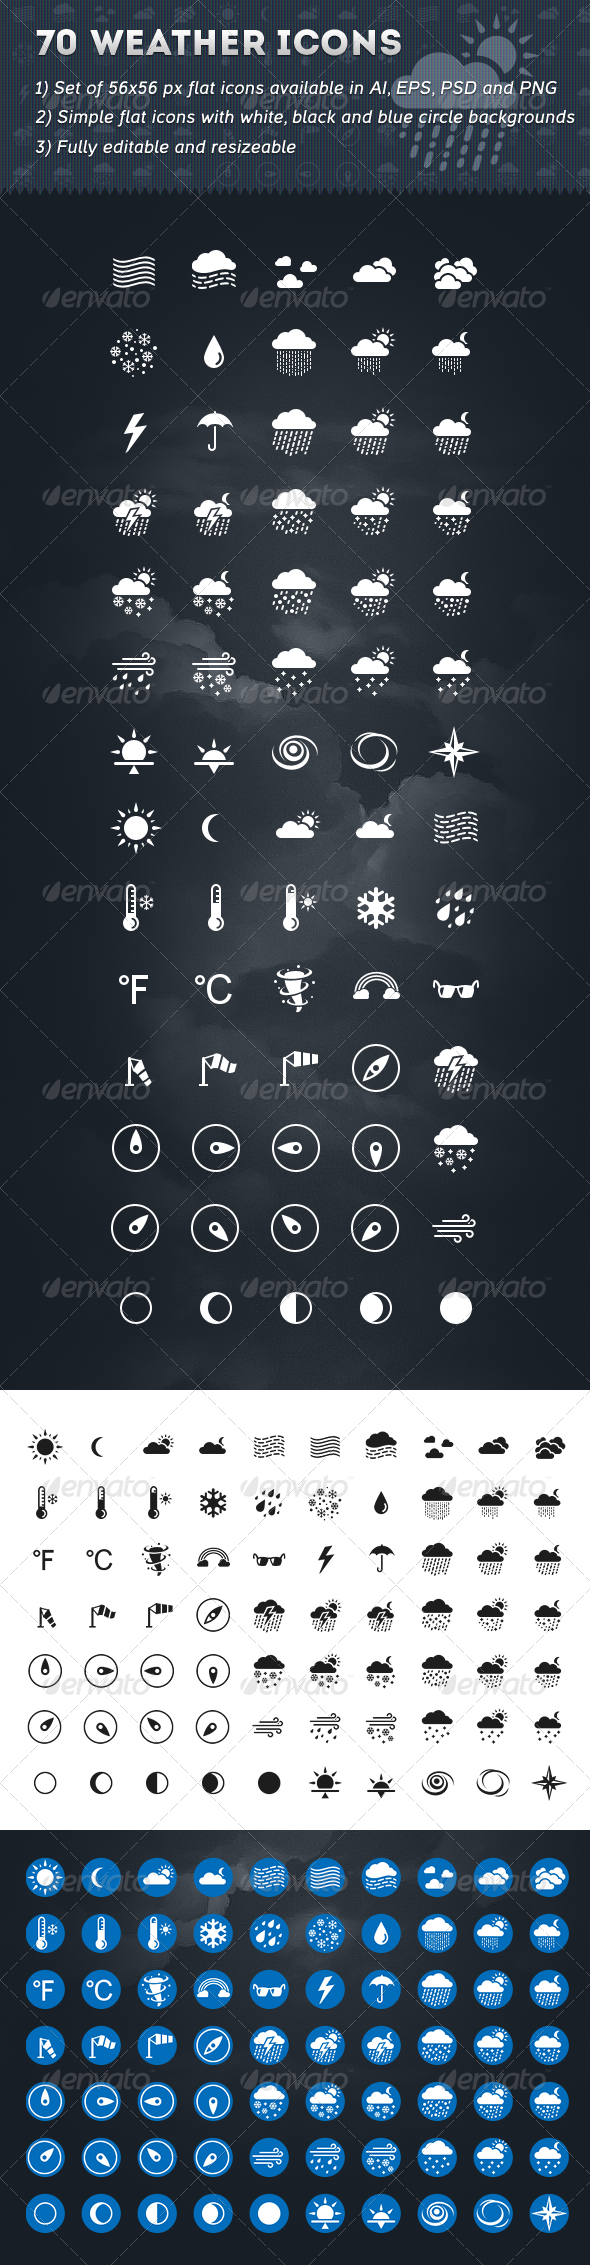 70 Weather Icons - Seasonal Icons